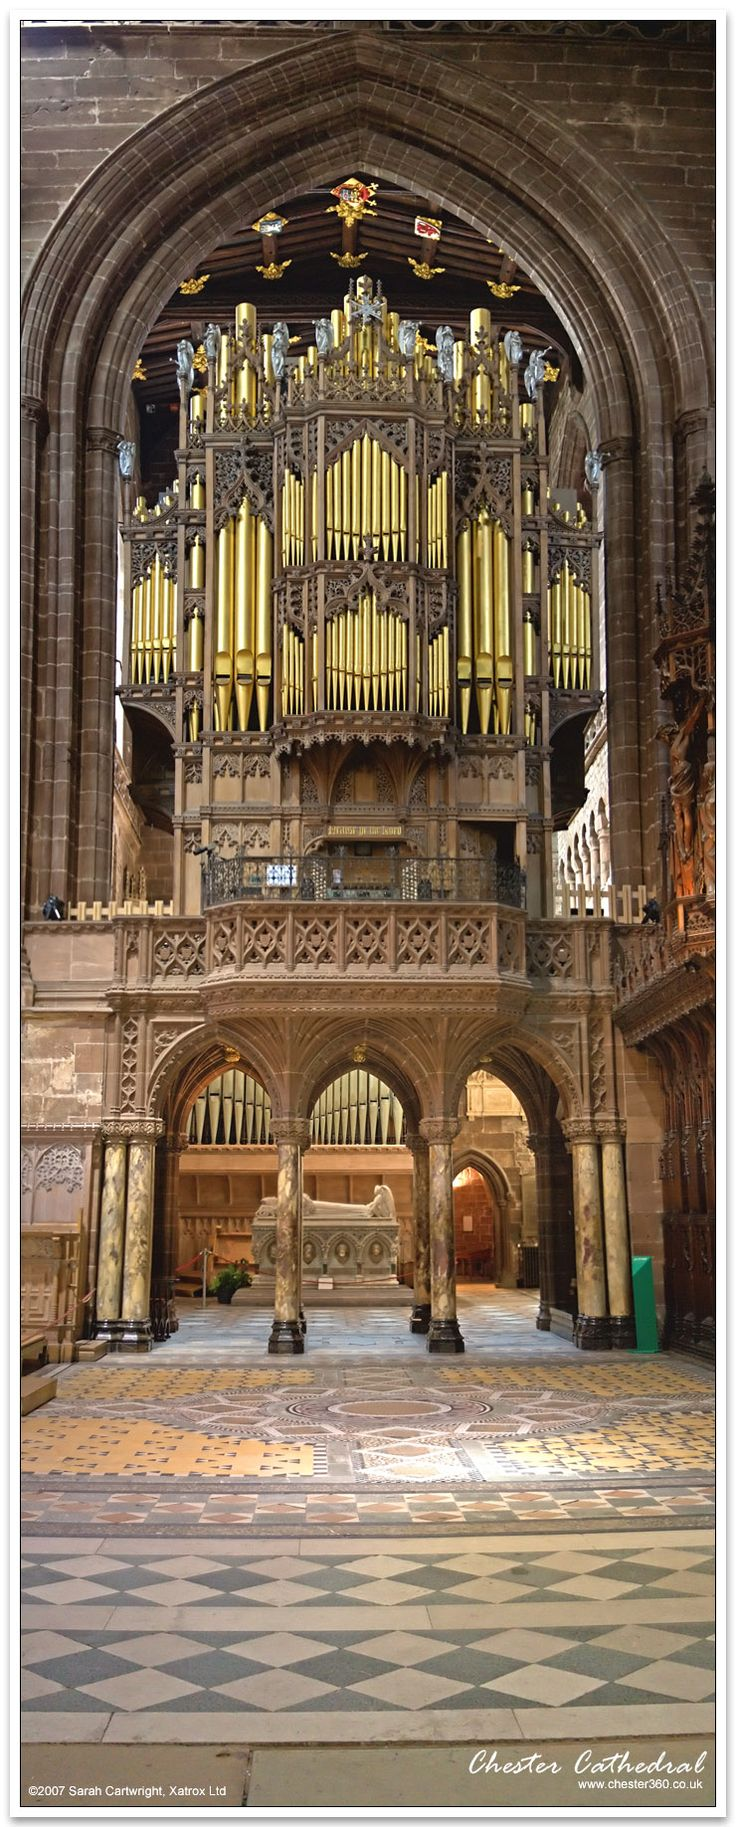 Chester Cathedral Organ, UK, Chester Cathedral dates from 1093 although there was a Roman place of worship on the site before this, stunning!